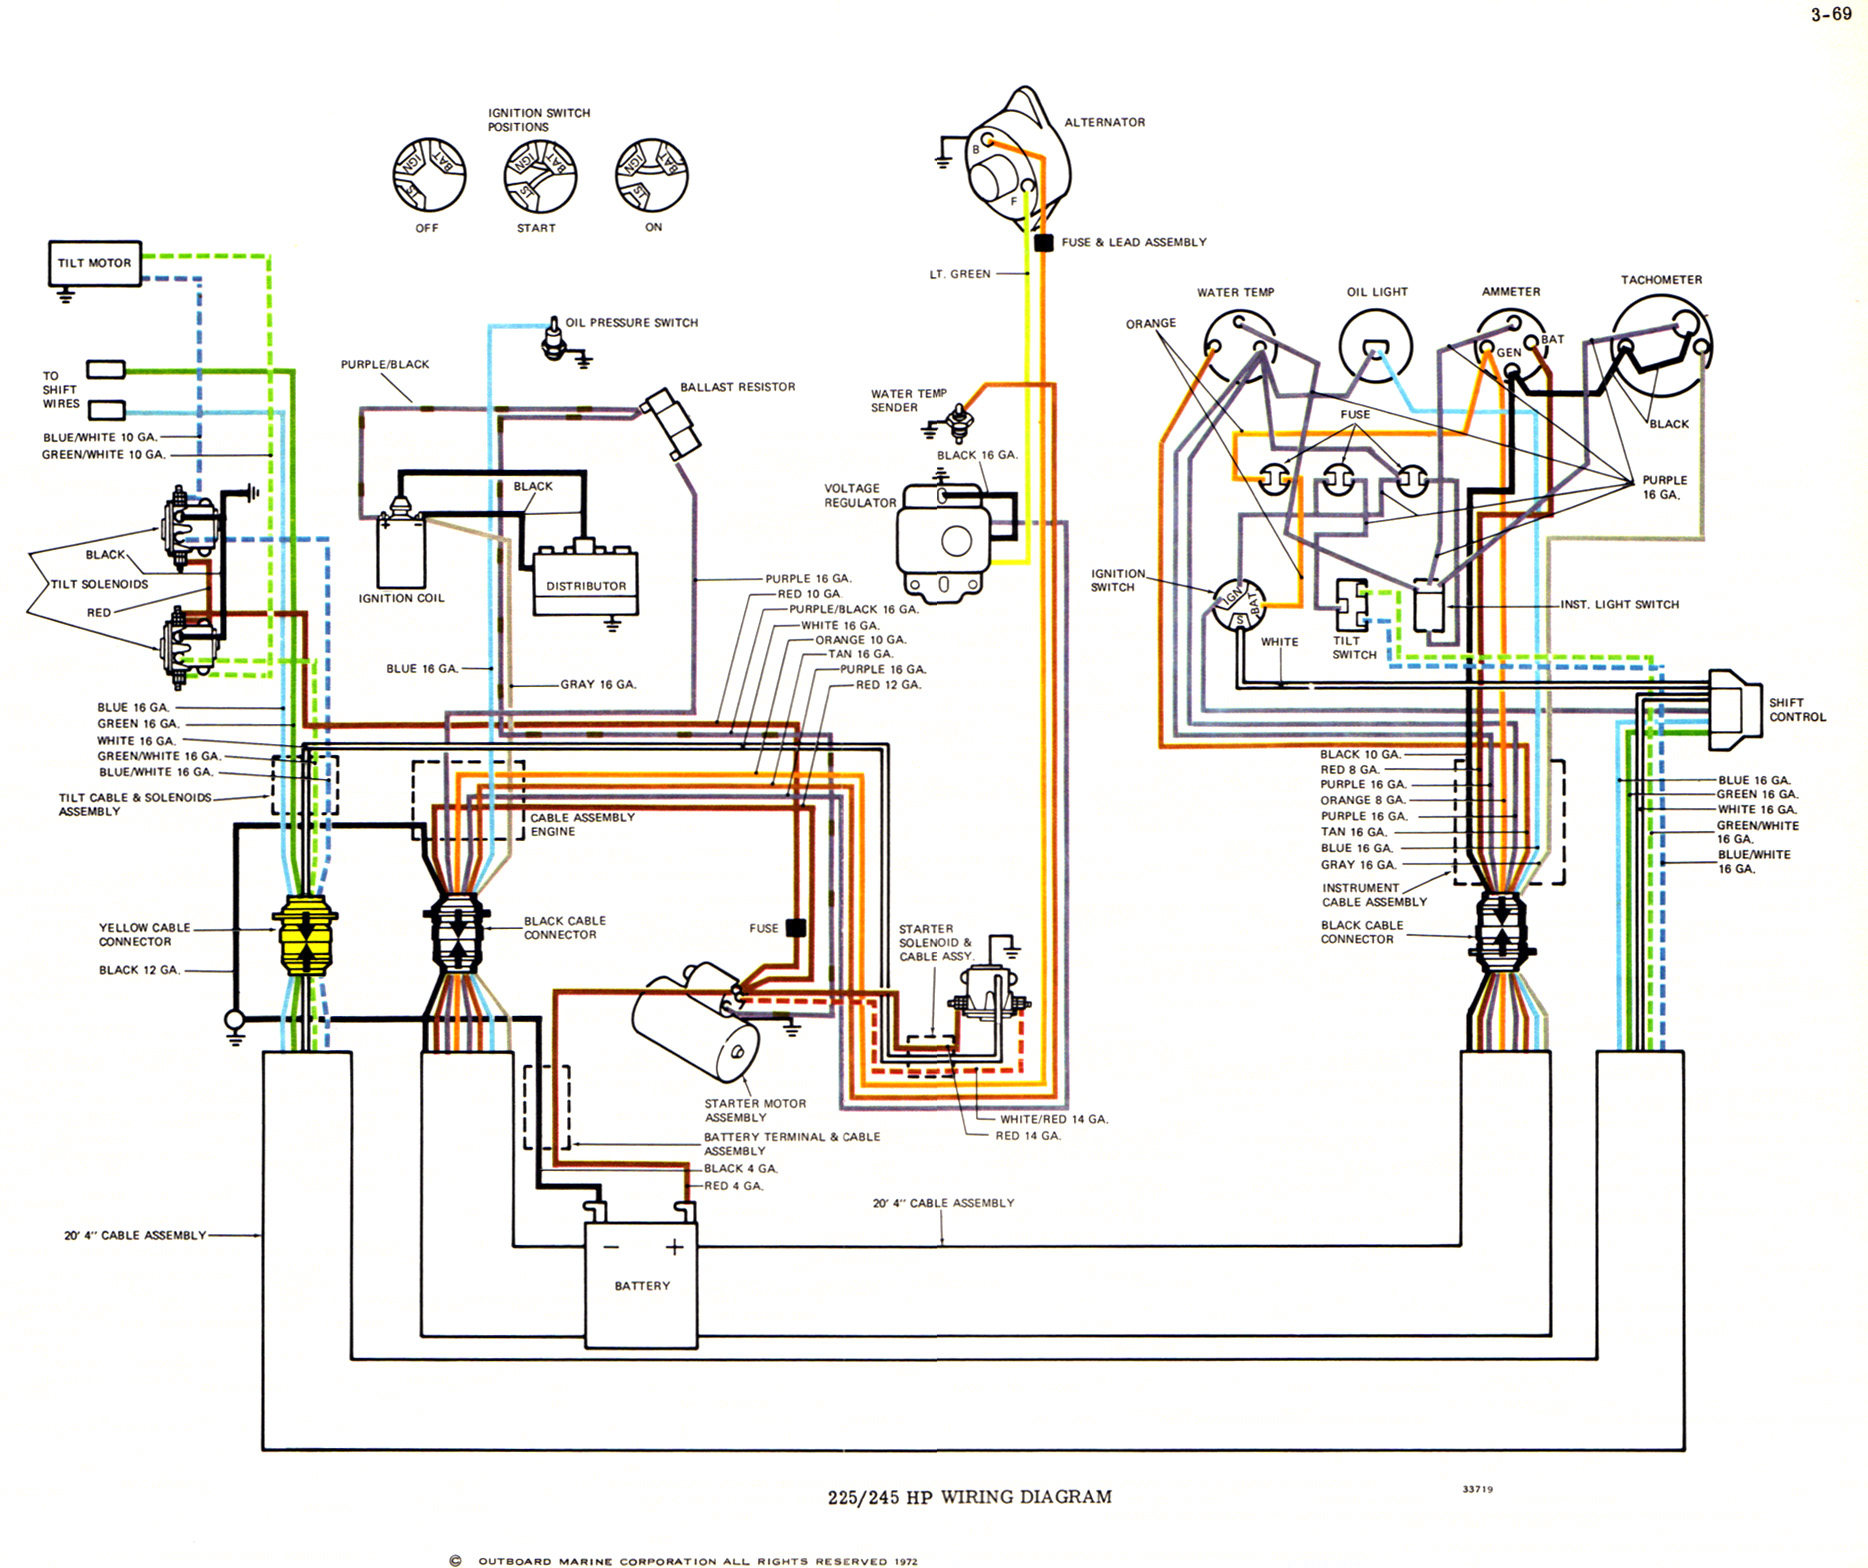 73_OMC_V8_all_big omc wiring diagram basic boat wiring schematic \u2022 wiring diagrams evinrude etec wiring diagram at fashall.co